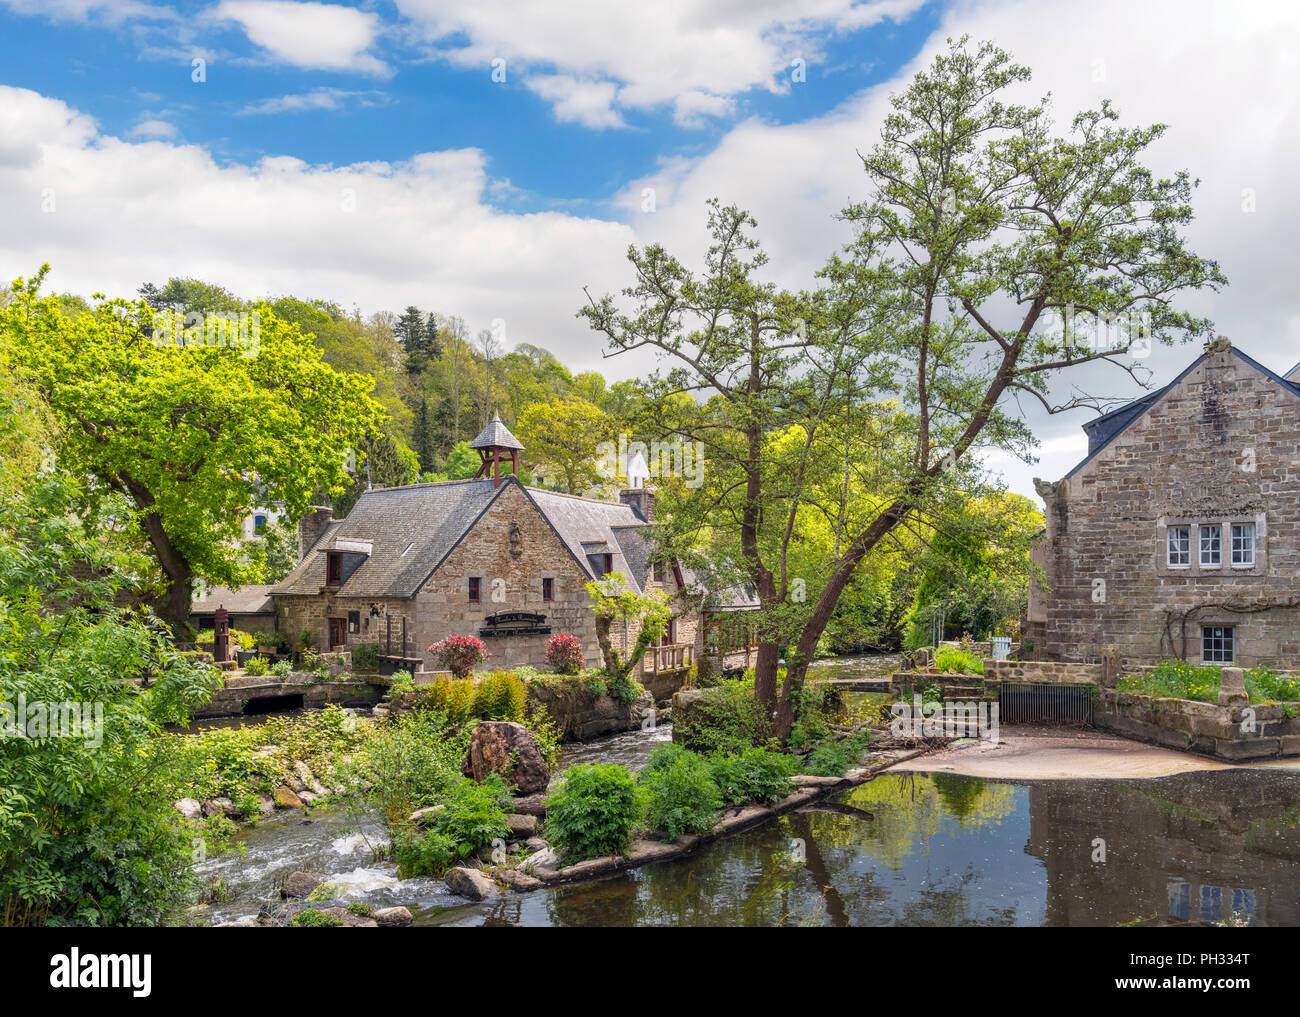 River Aven looking towards the Moulin De Rosmadec hotel, Pont-Aven, Finistere, Brittany, France - Stock Image